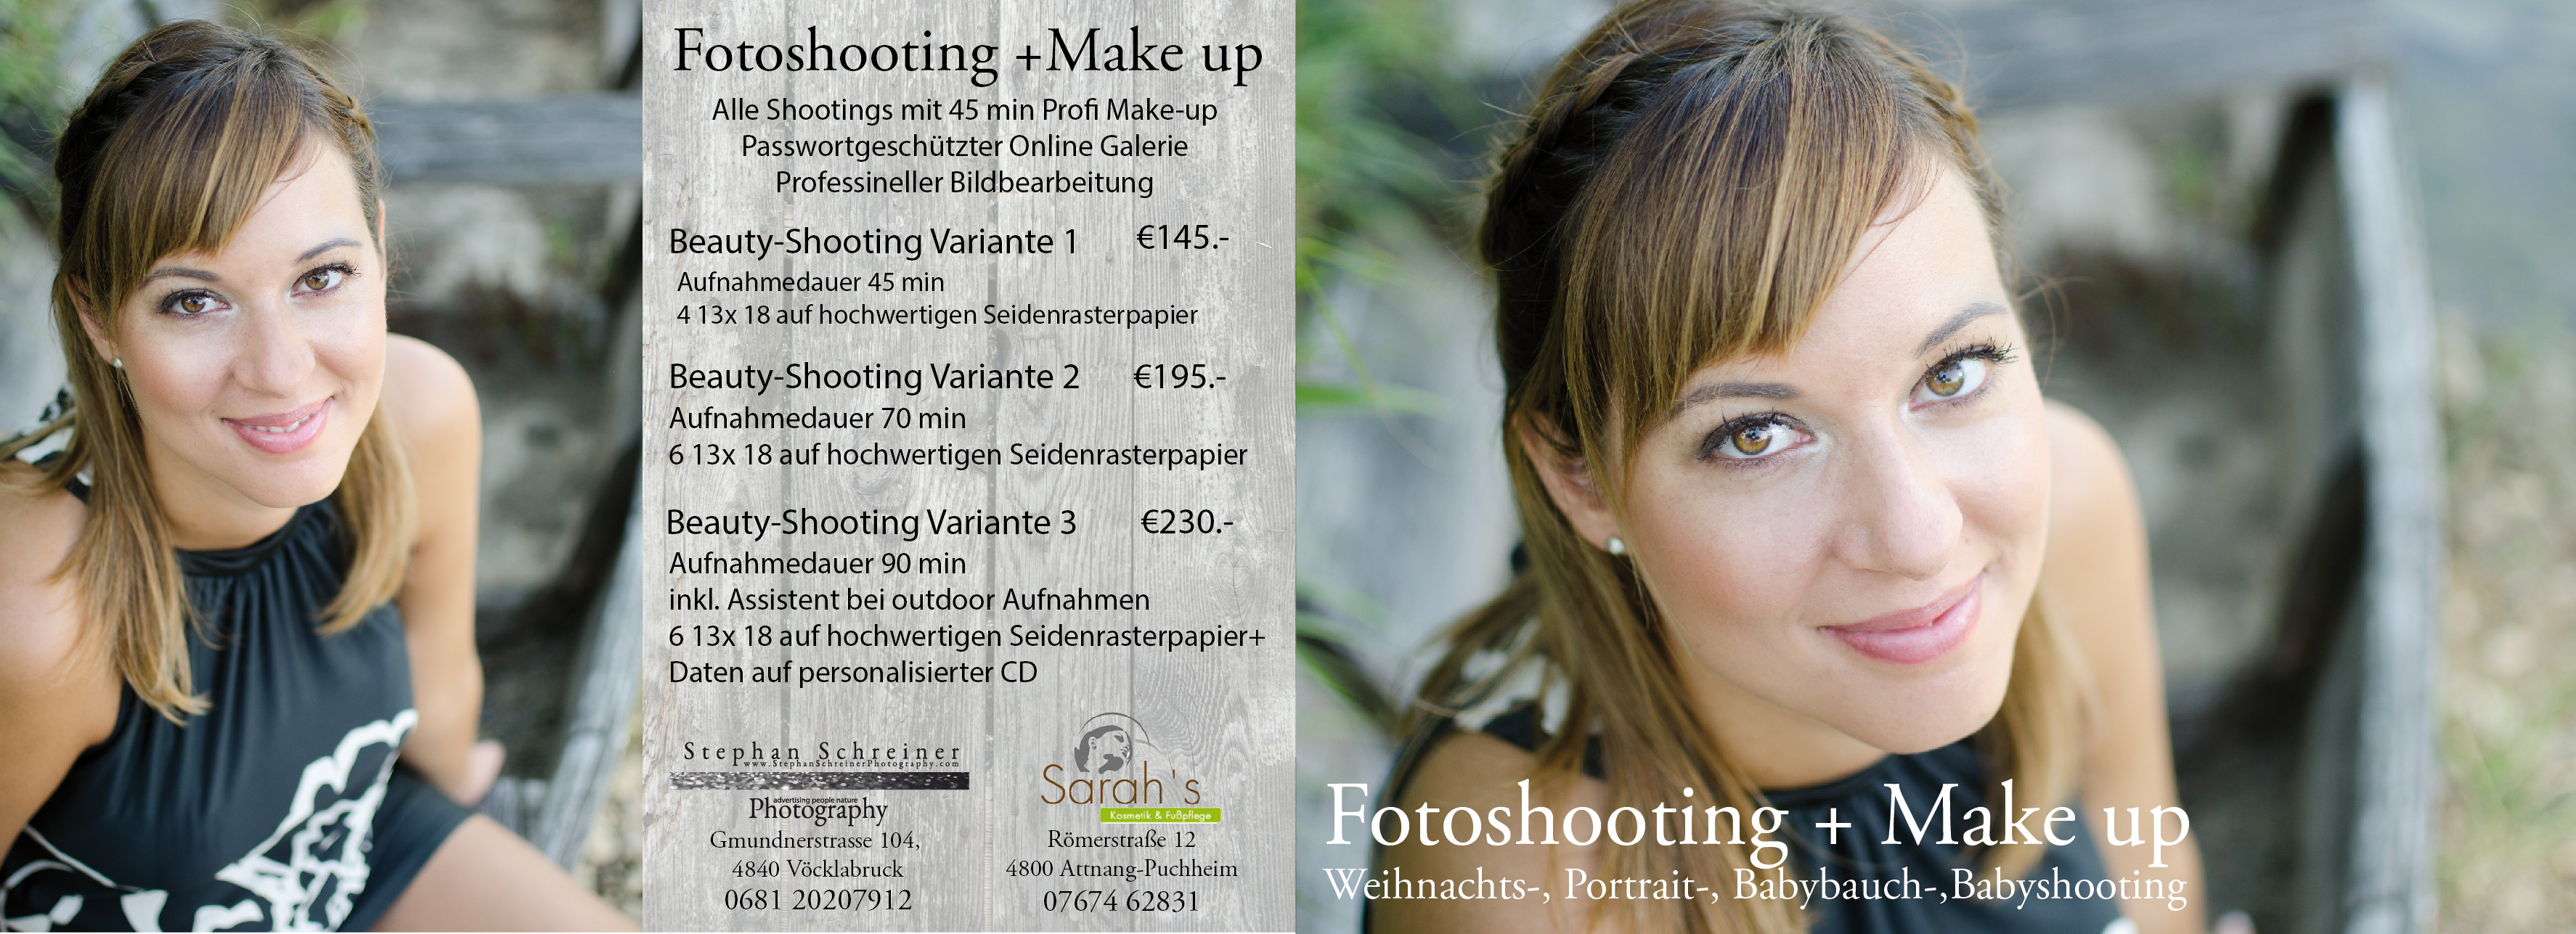 Fotoshooting_make_up-01